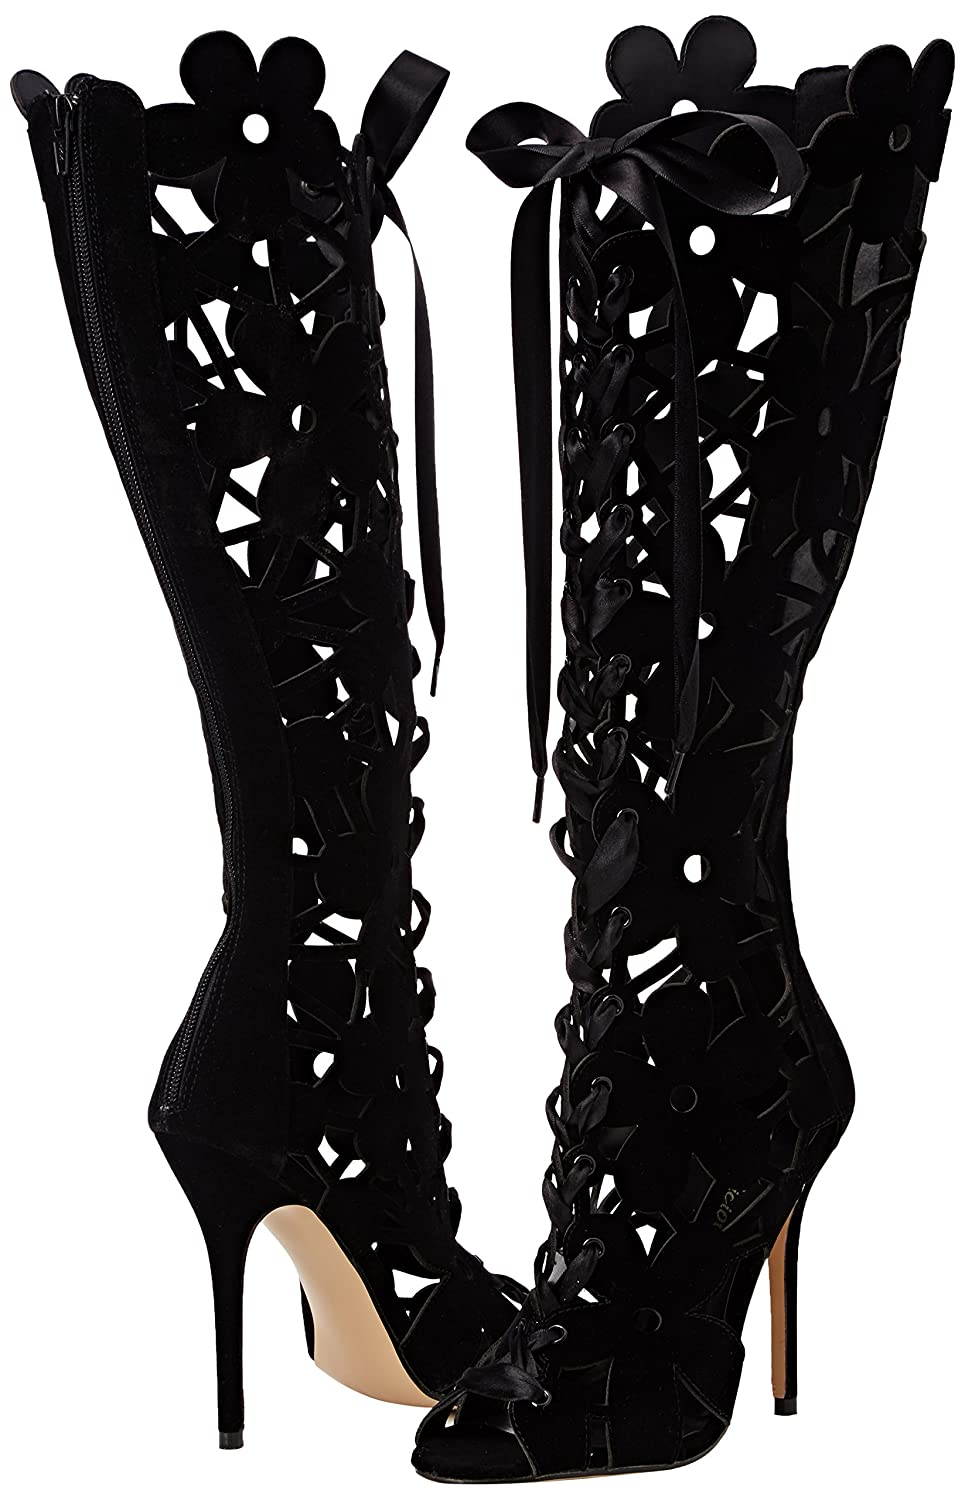 Fabulicious AMUSE-2020 5 Inch Heel Open Toe Front Lace-up Knee High Boot